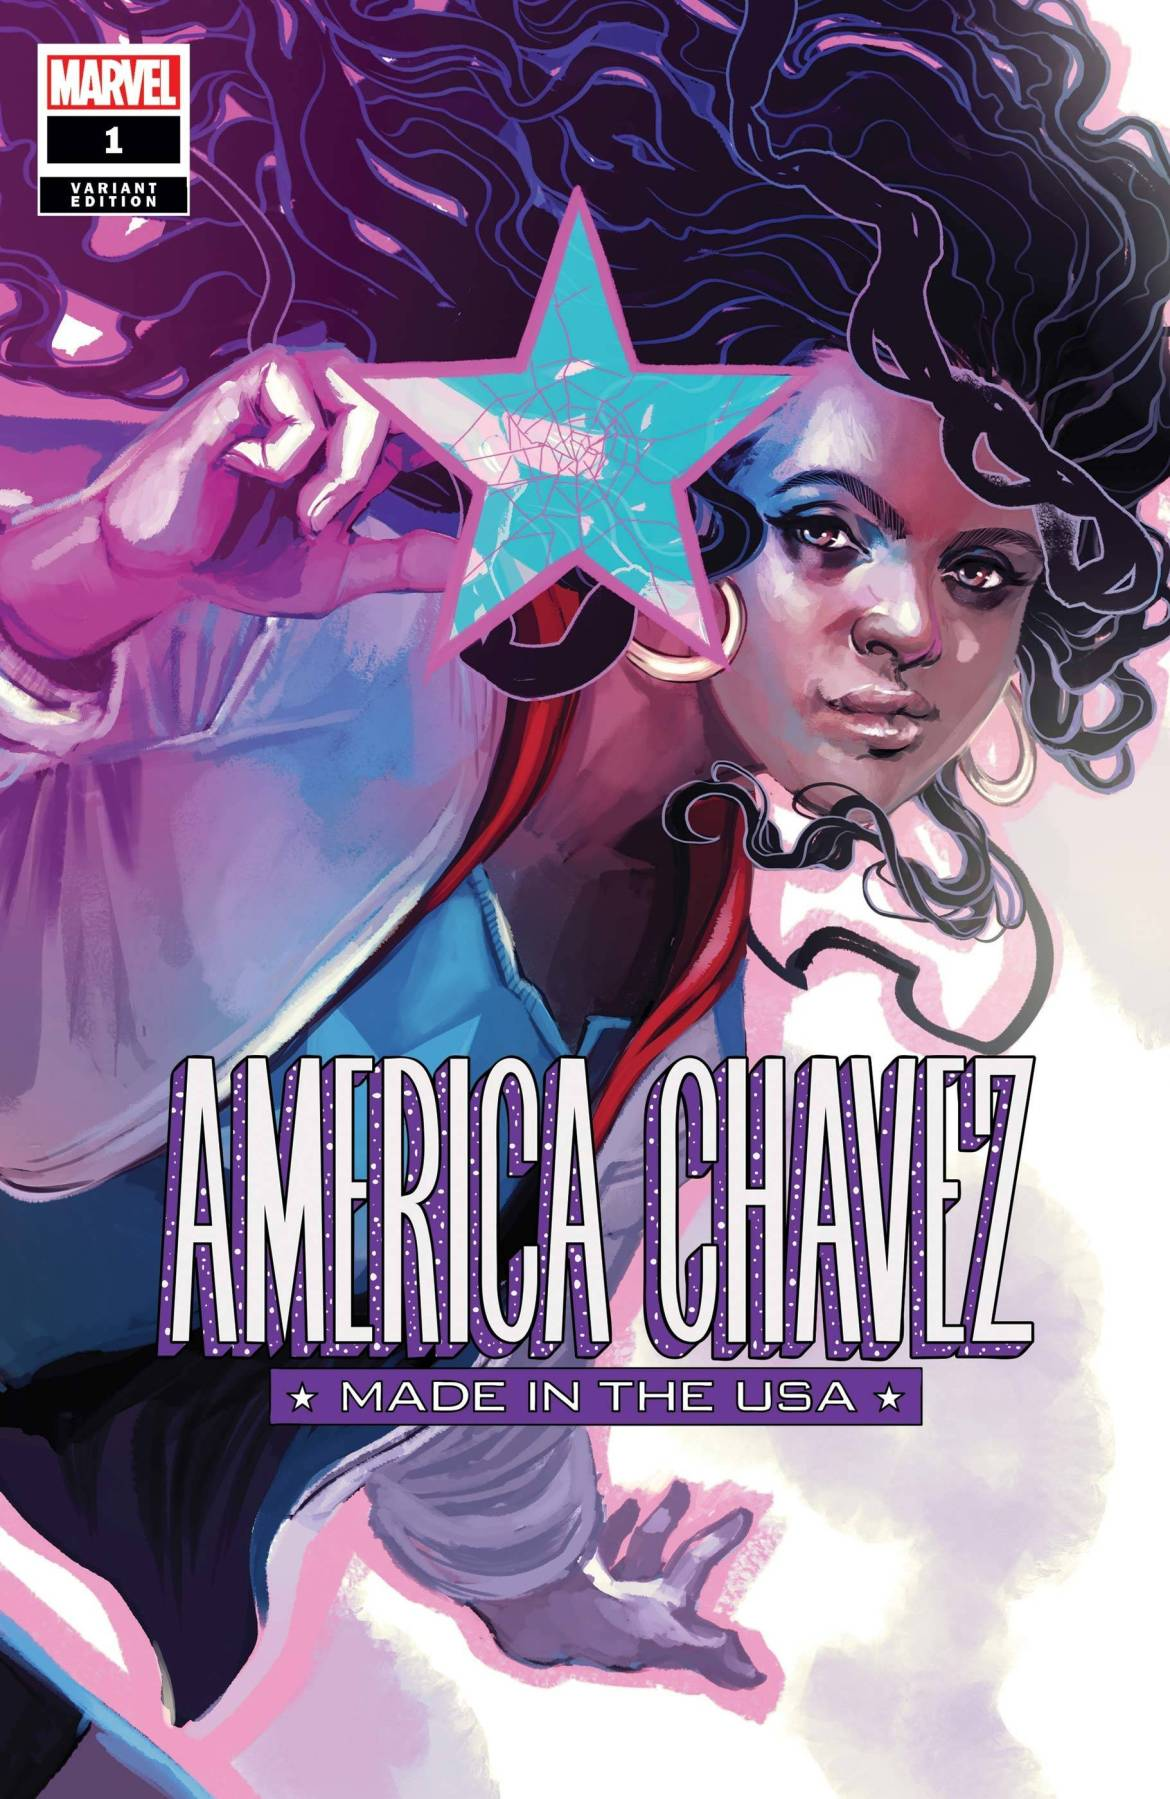 STL158053 New challenges are undertaken in AMERICA CHAVEZ: MADE IN THE USA #1